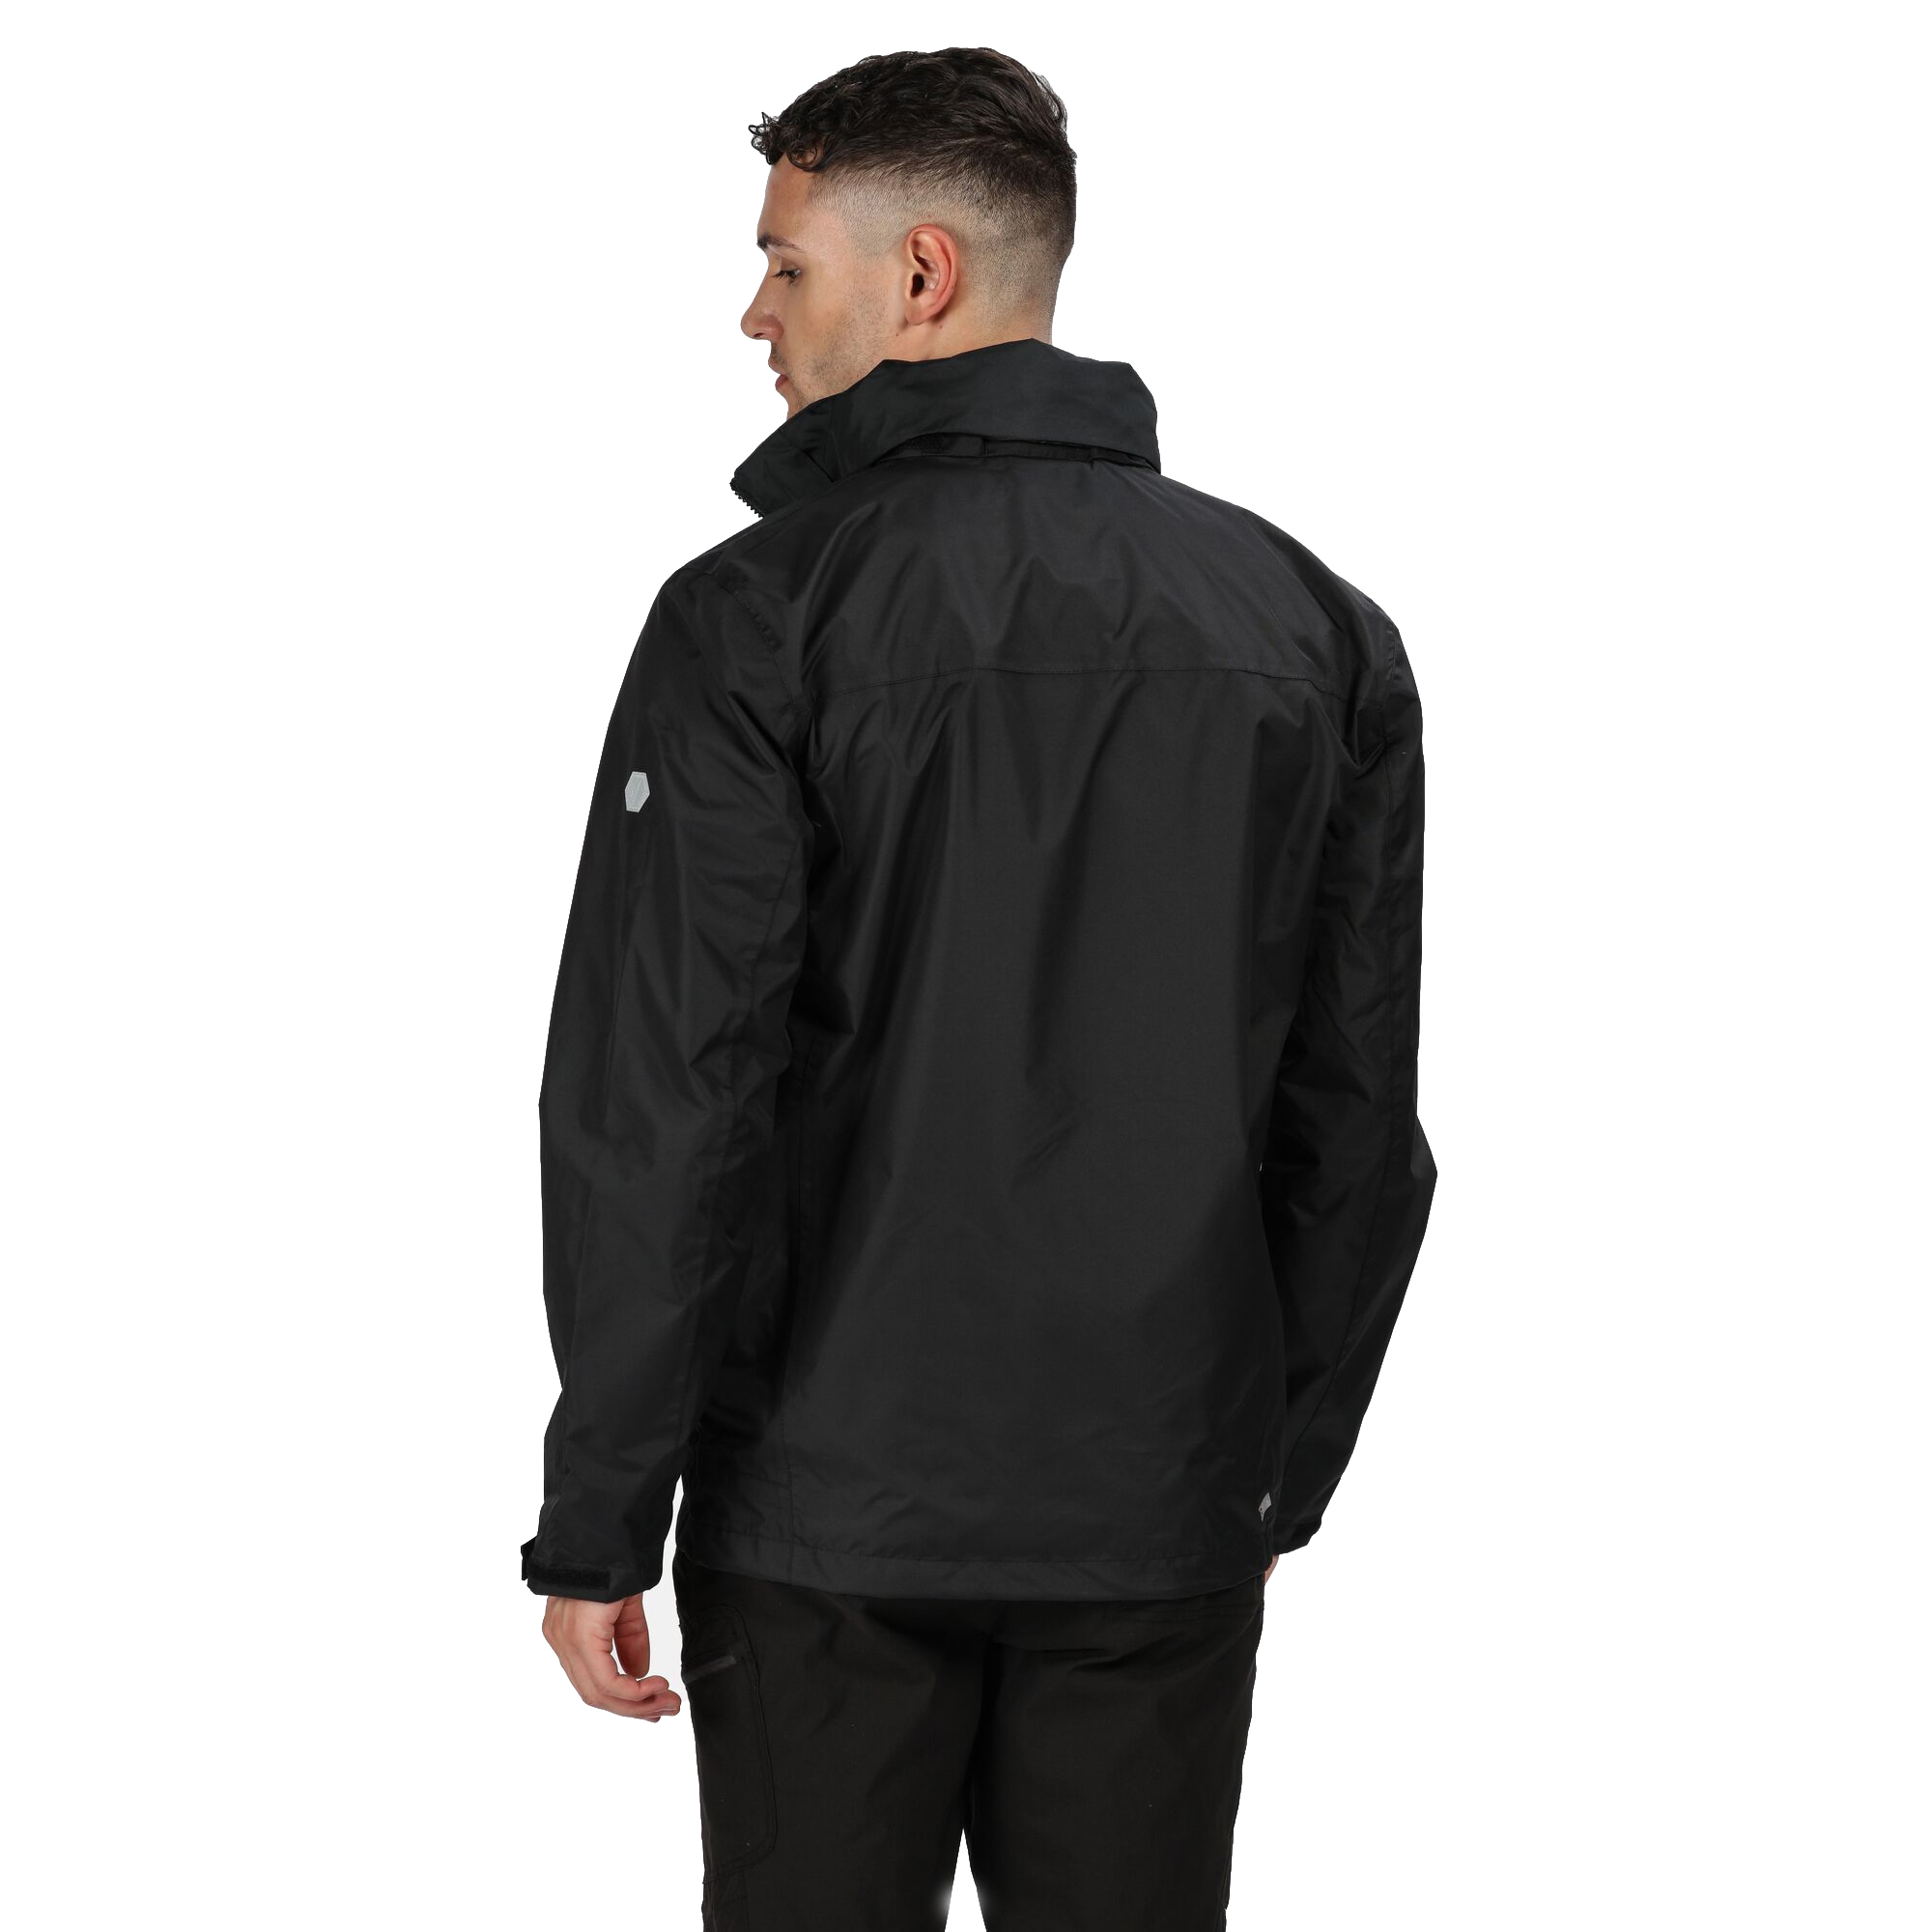 Mens-Regatta-Lightweight-Waterproof-Windproof-Jacket-Clearance-RRP-70-00 thumbnail 13